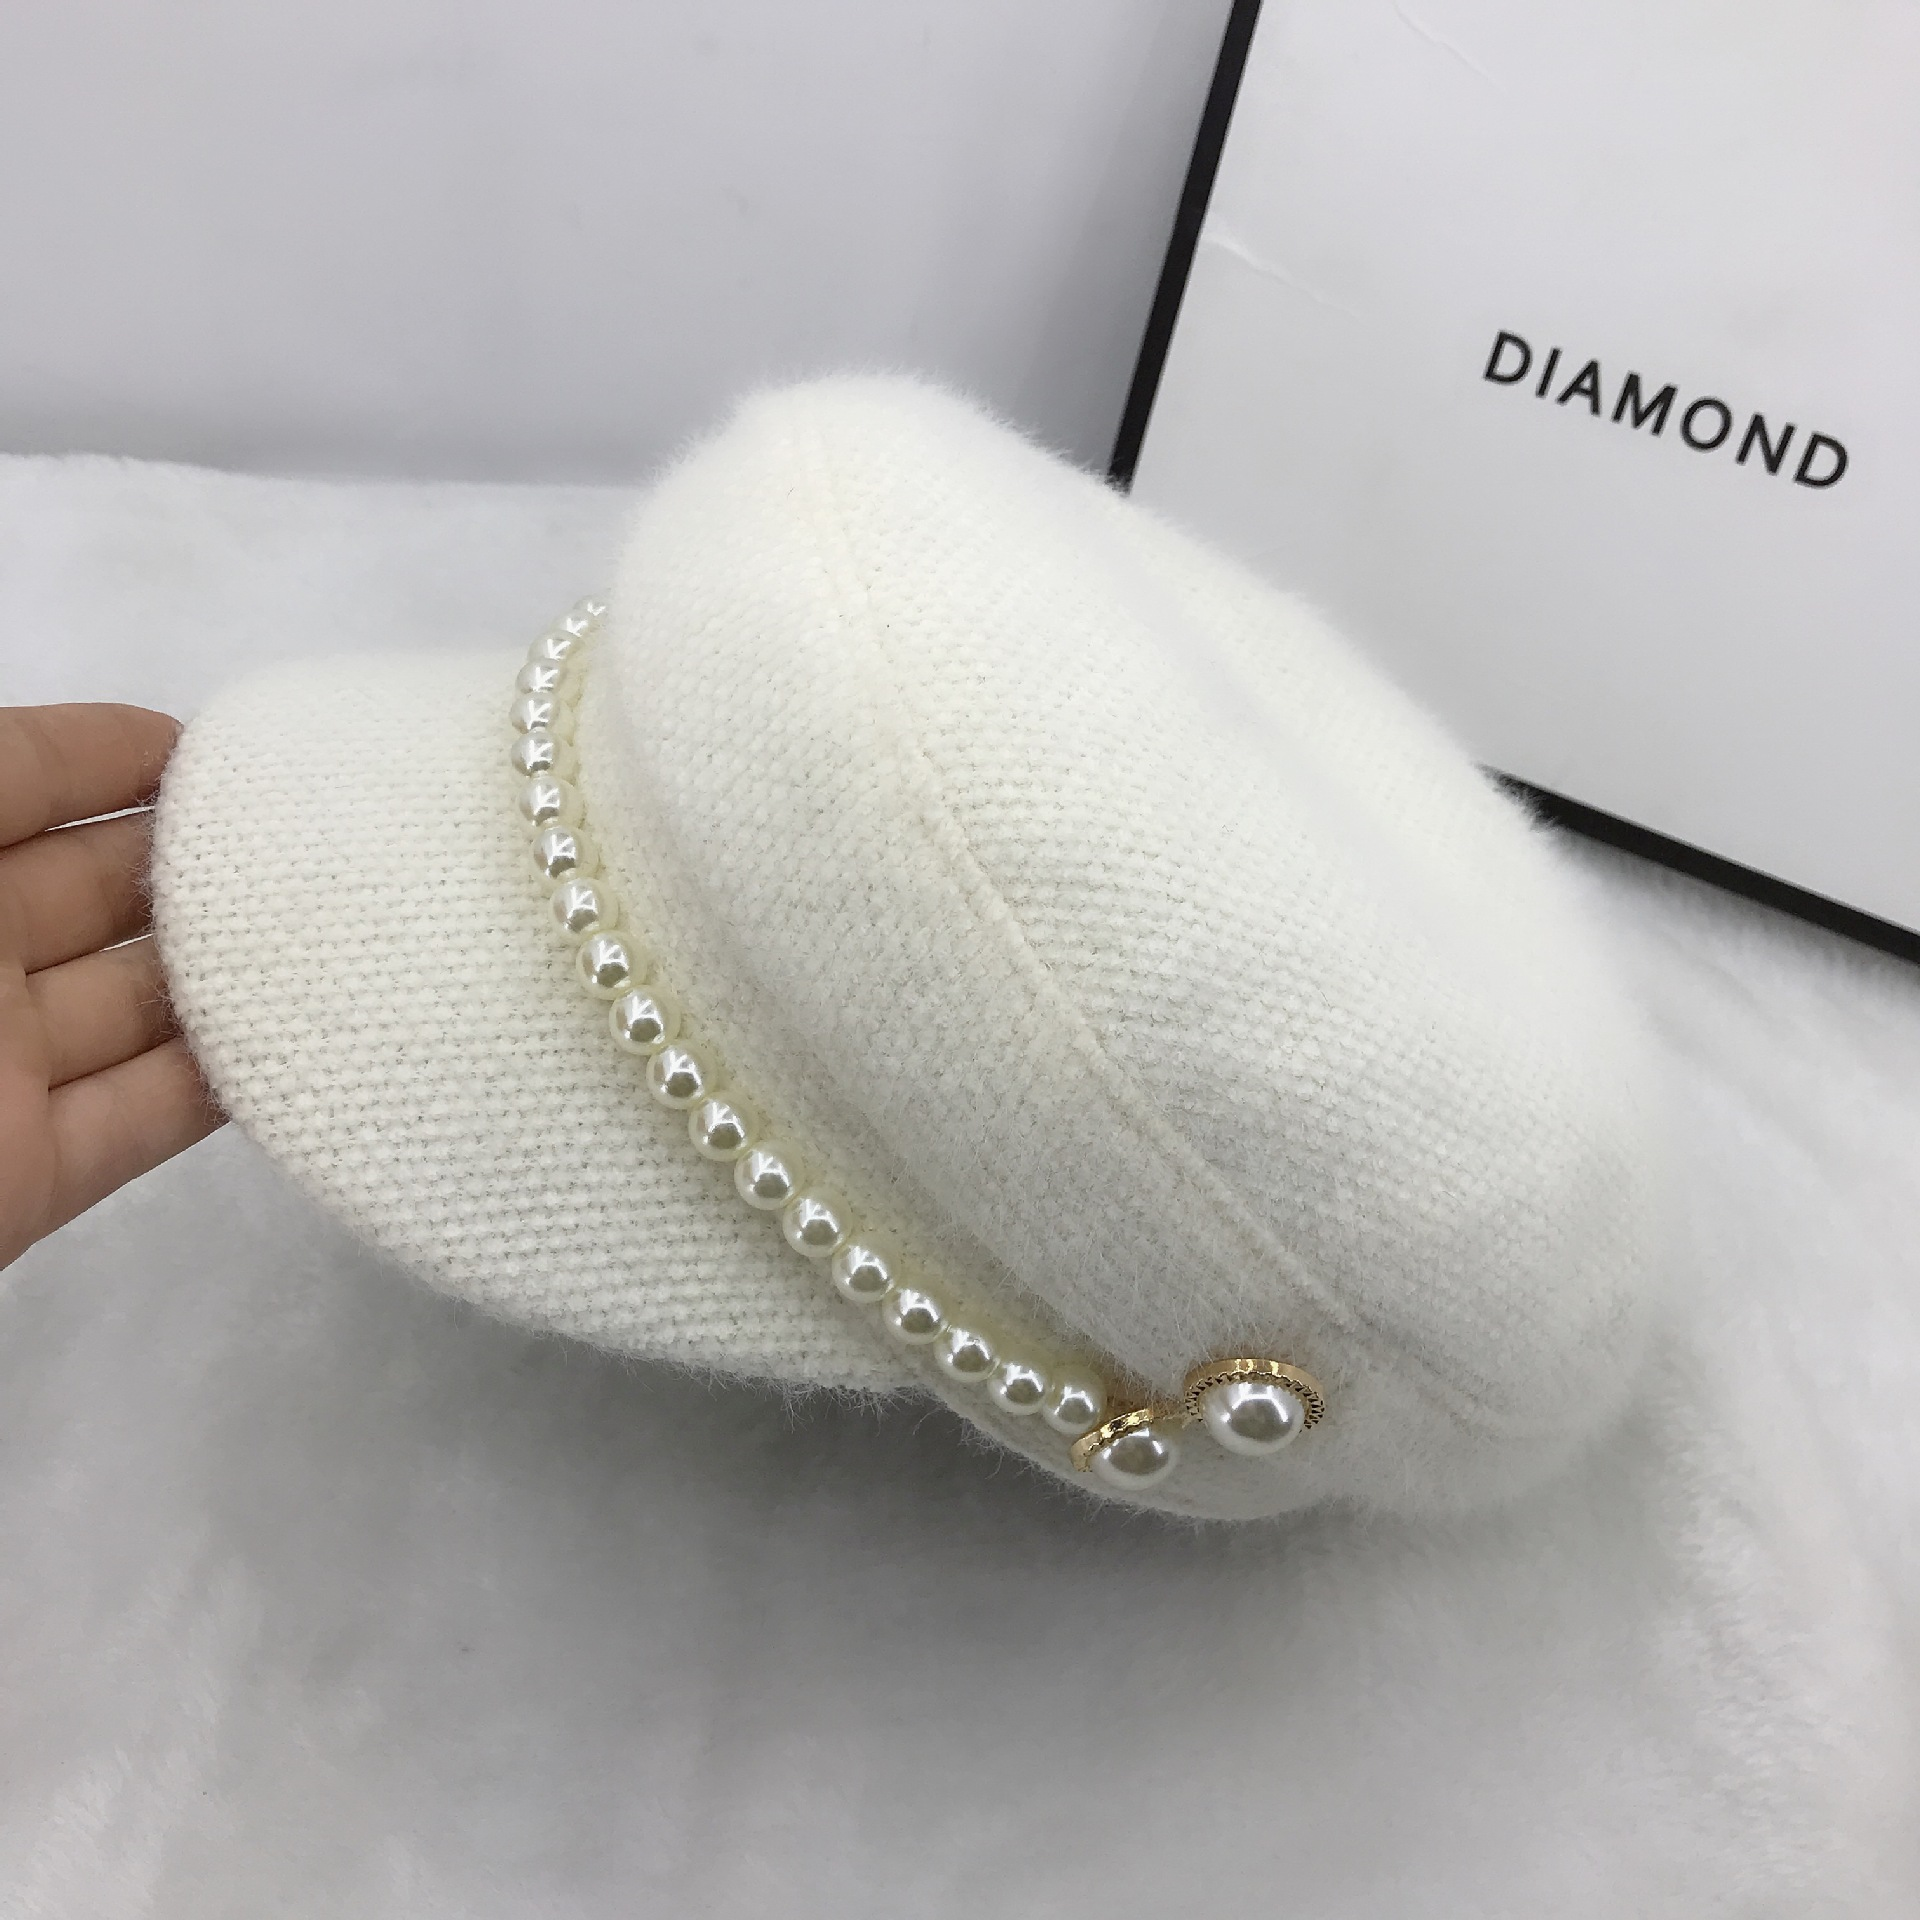 01911-fu-pearl  Buttons Winter Warm Faux Fur  Lady Octagonal Hat  Women Leisure Visors Cap